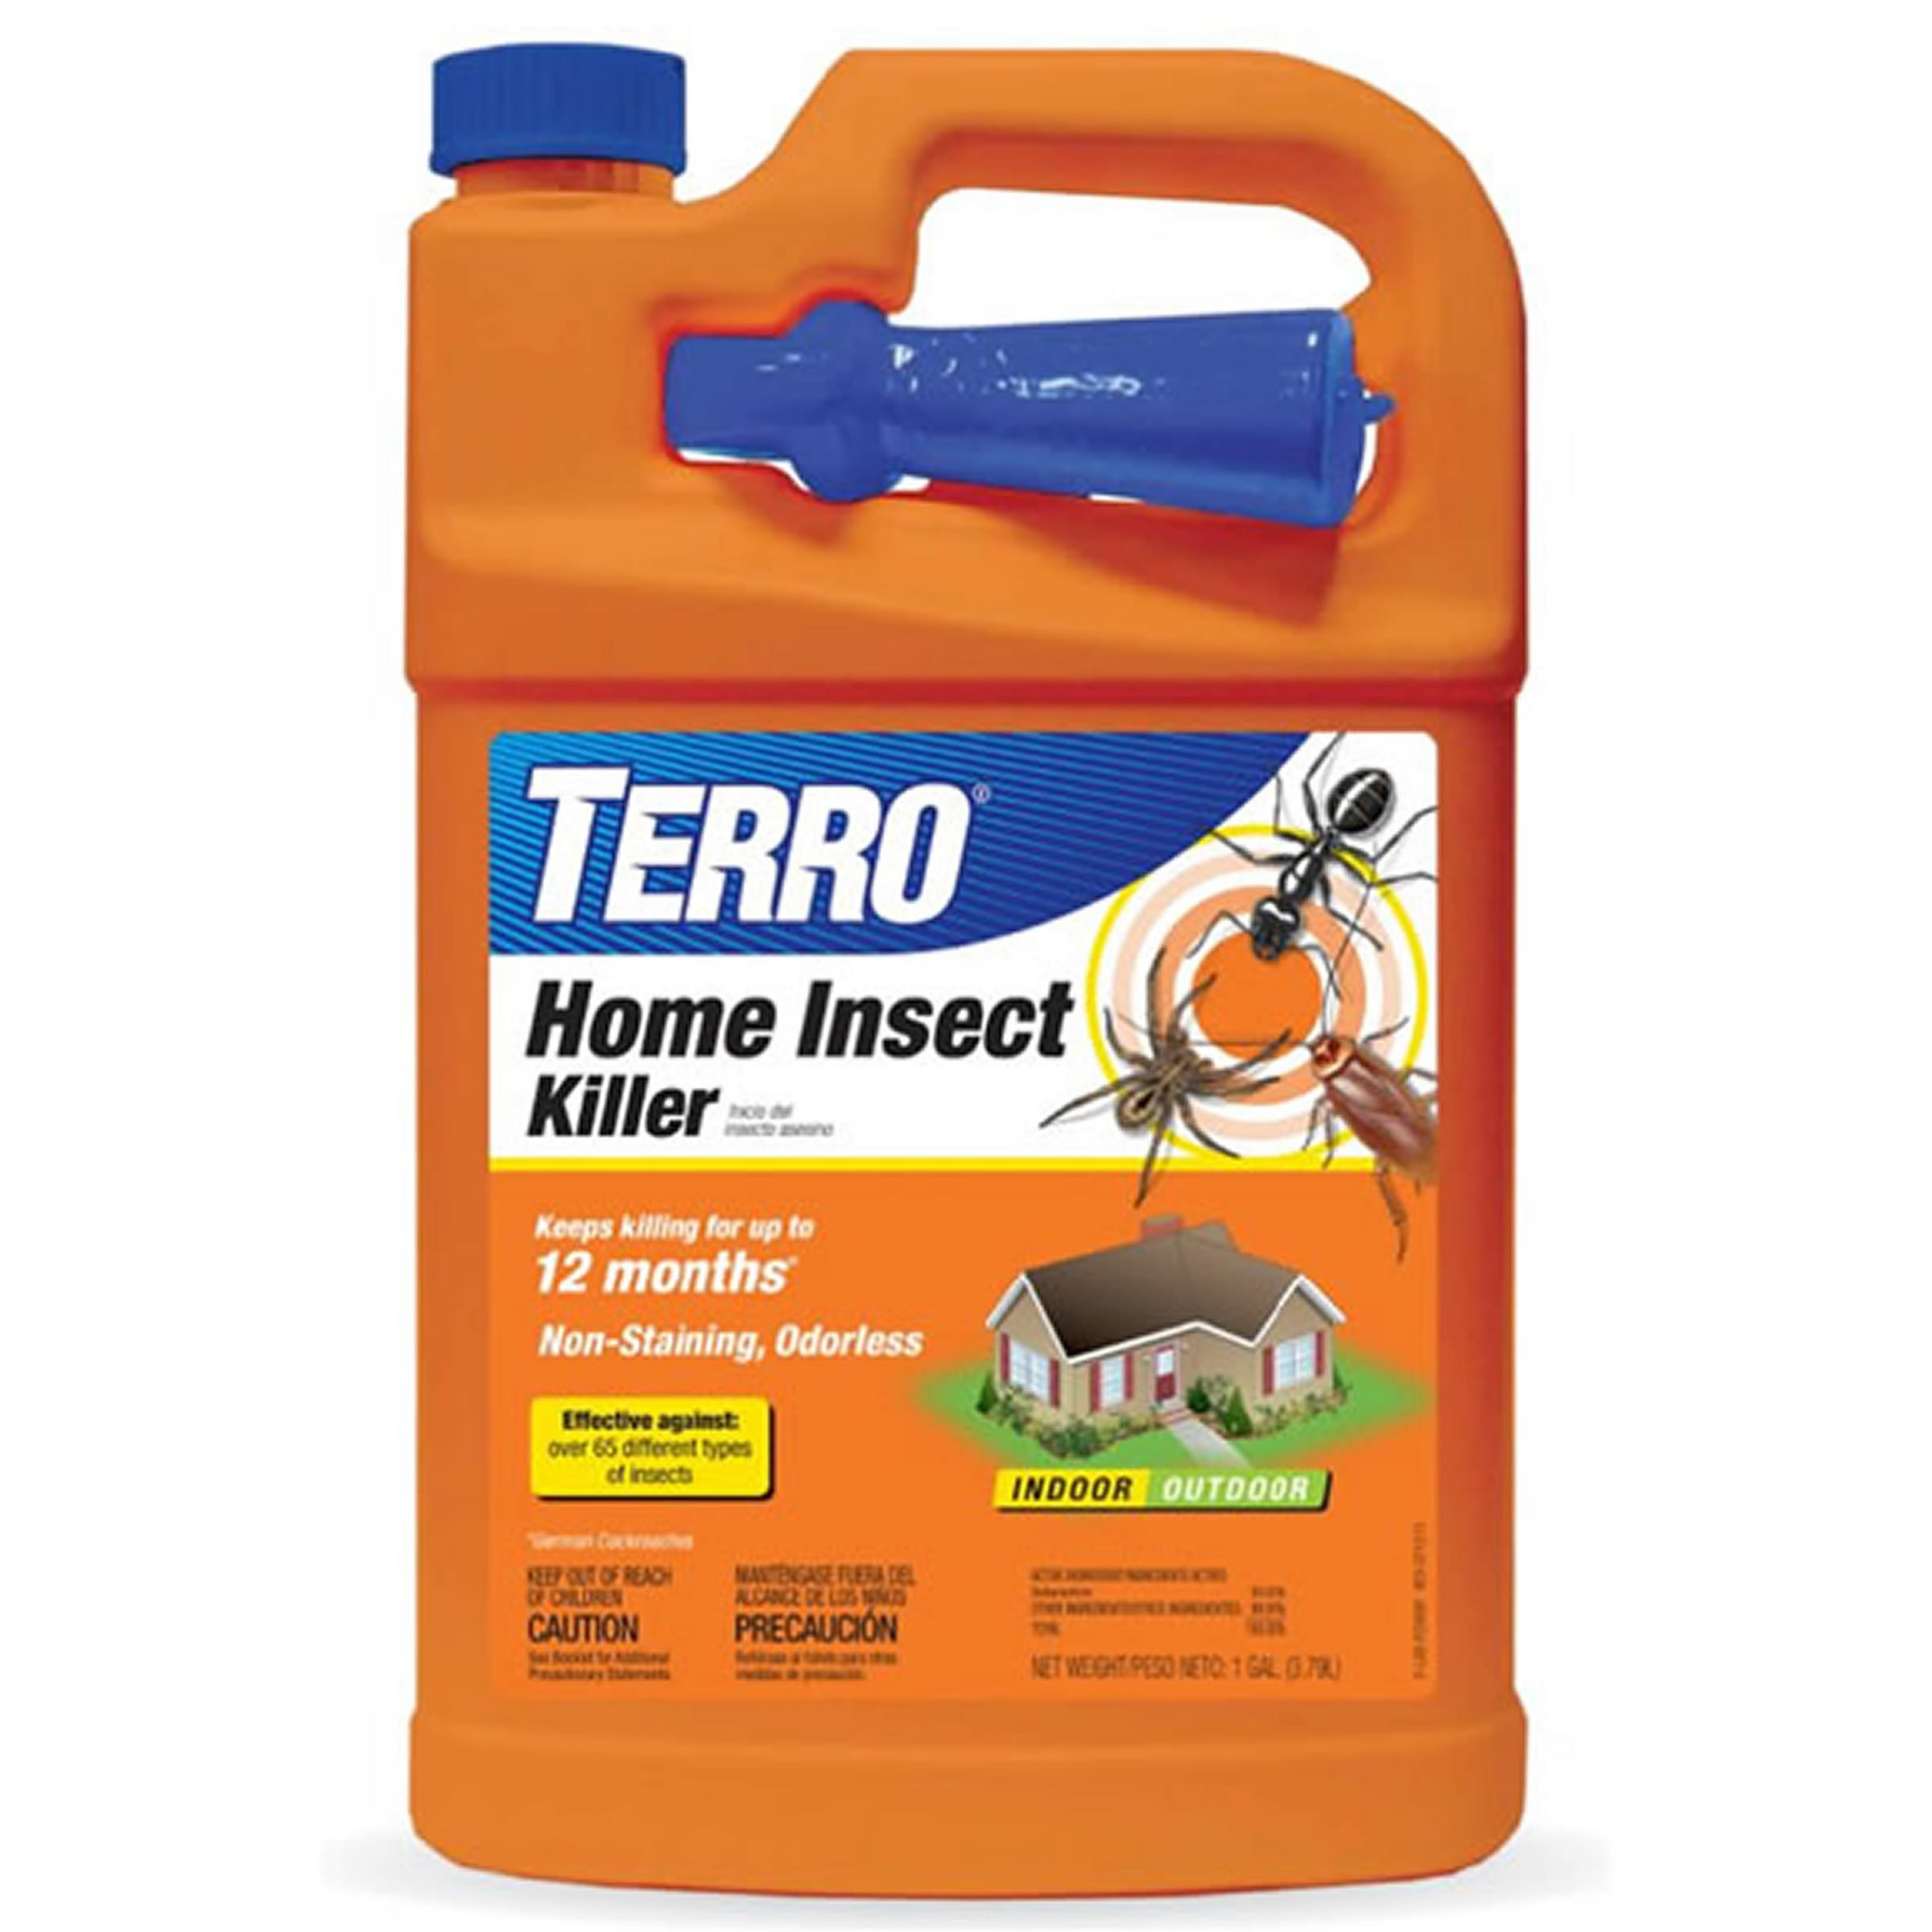 TERRO T3400 Home Insect Killer 12 month Non-Staining, Odorless Indoor/Outdoor 1 GAL.